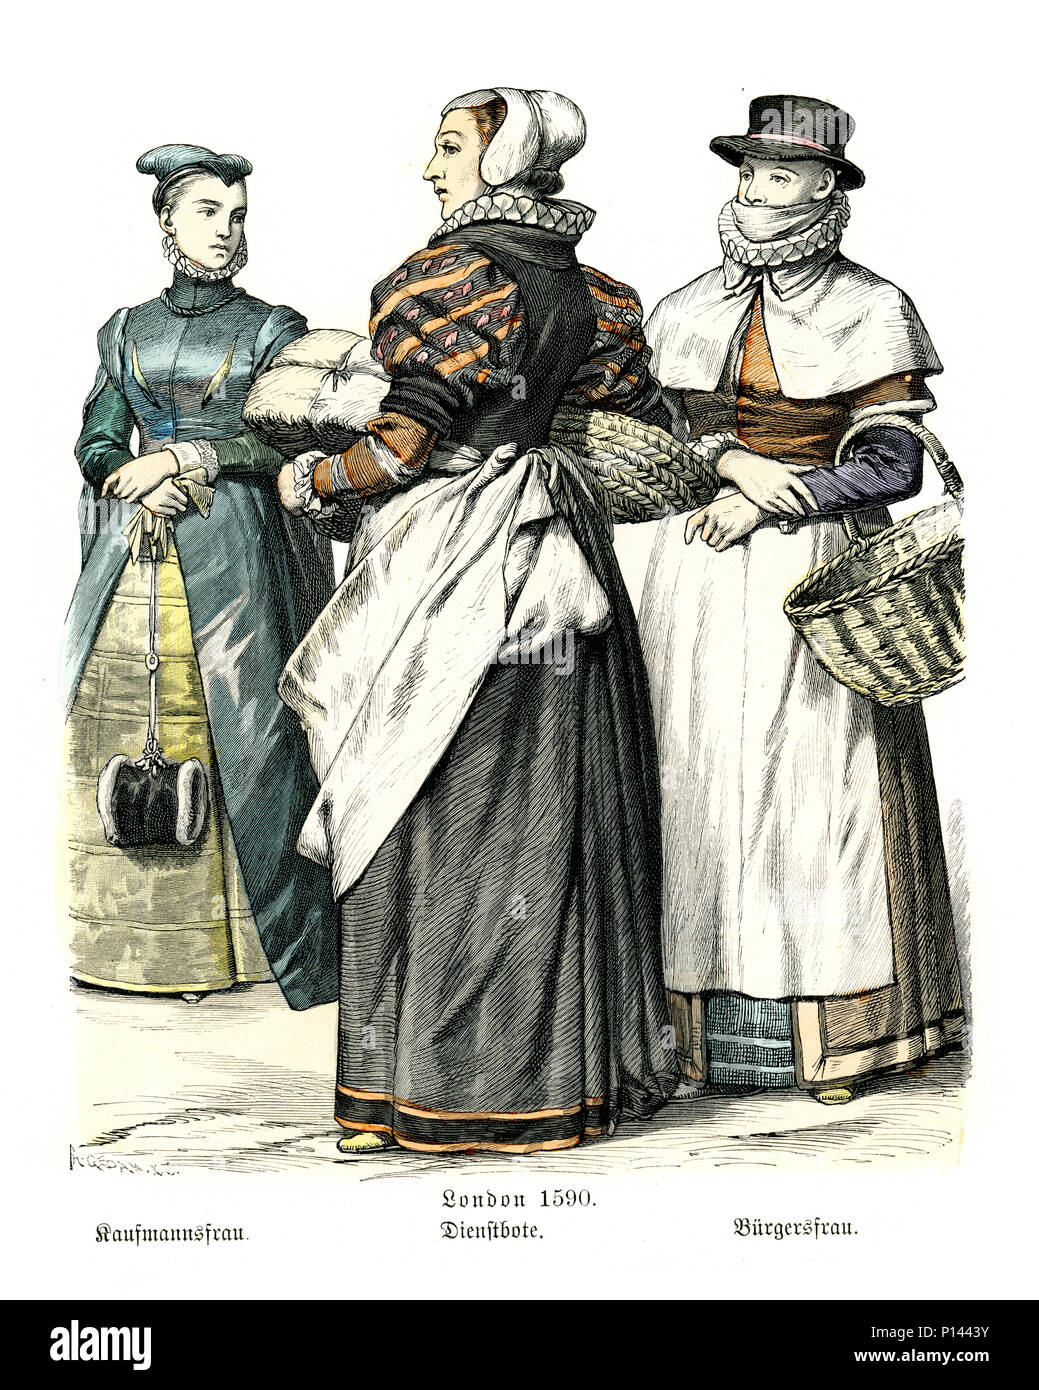 Vintage engraving of History of Fashion, Womens Costumes of London, late 16th Century.  Noblewoman, merchants wife and servant - Stock Image